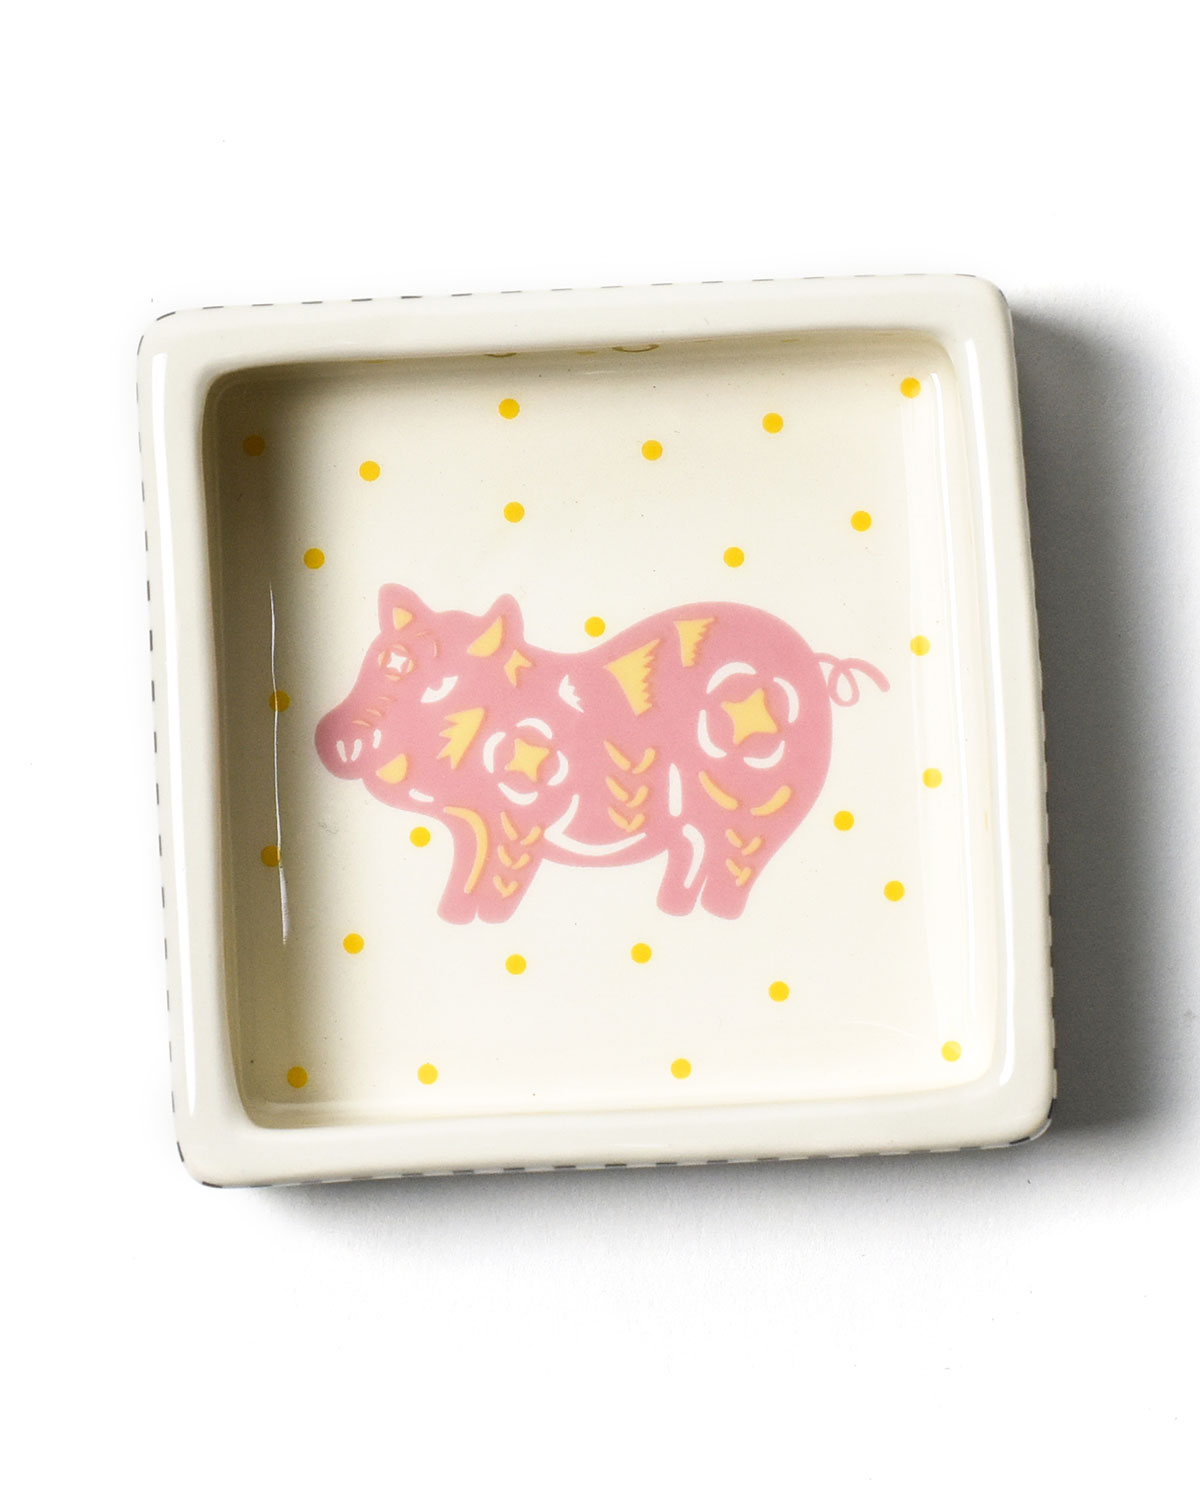 Coton Colors Chinese Zodiac Pig Small Square Trinket Bowl